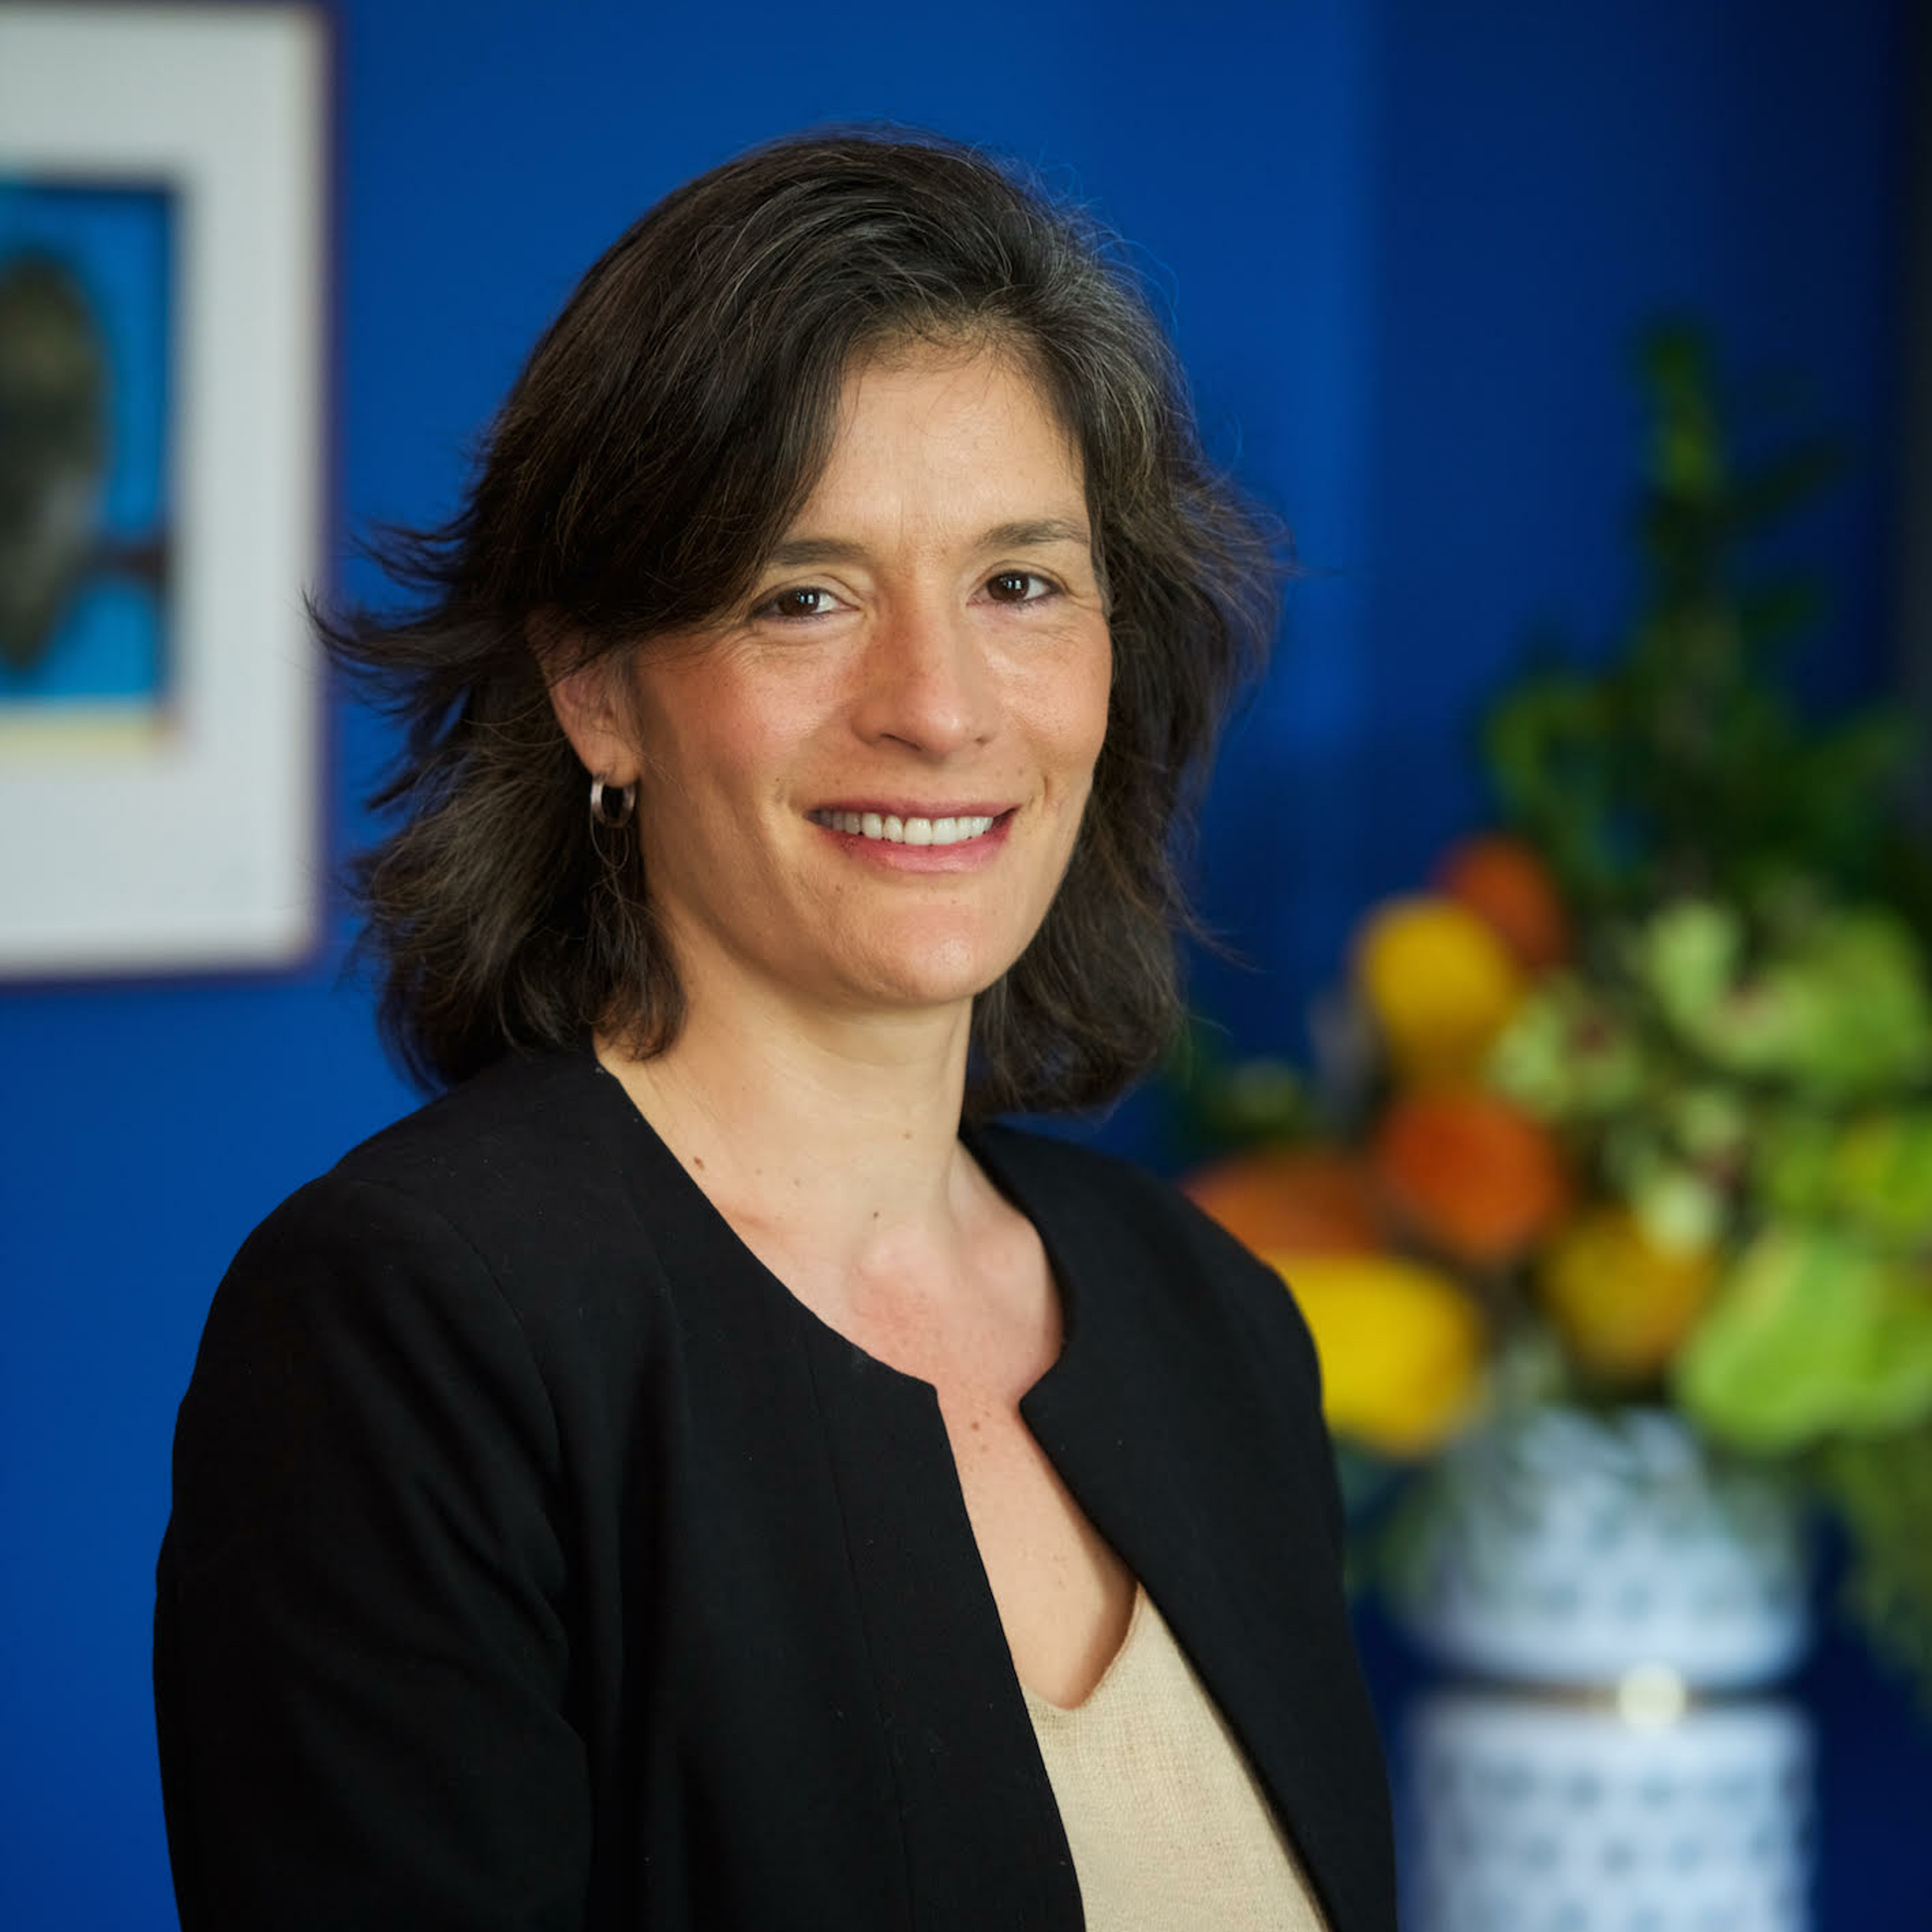 Monica Brand Engel of Quona Capital on why impact investment gets a bad rap